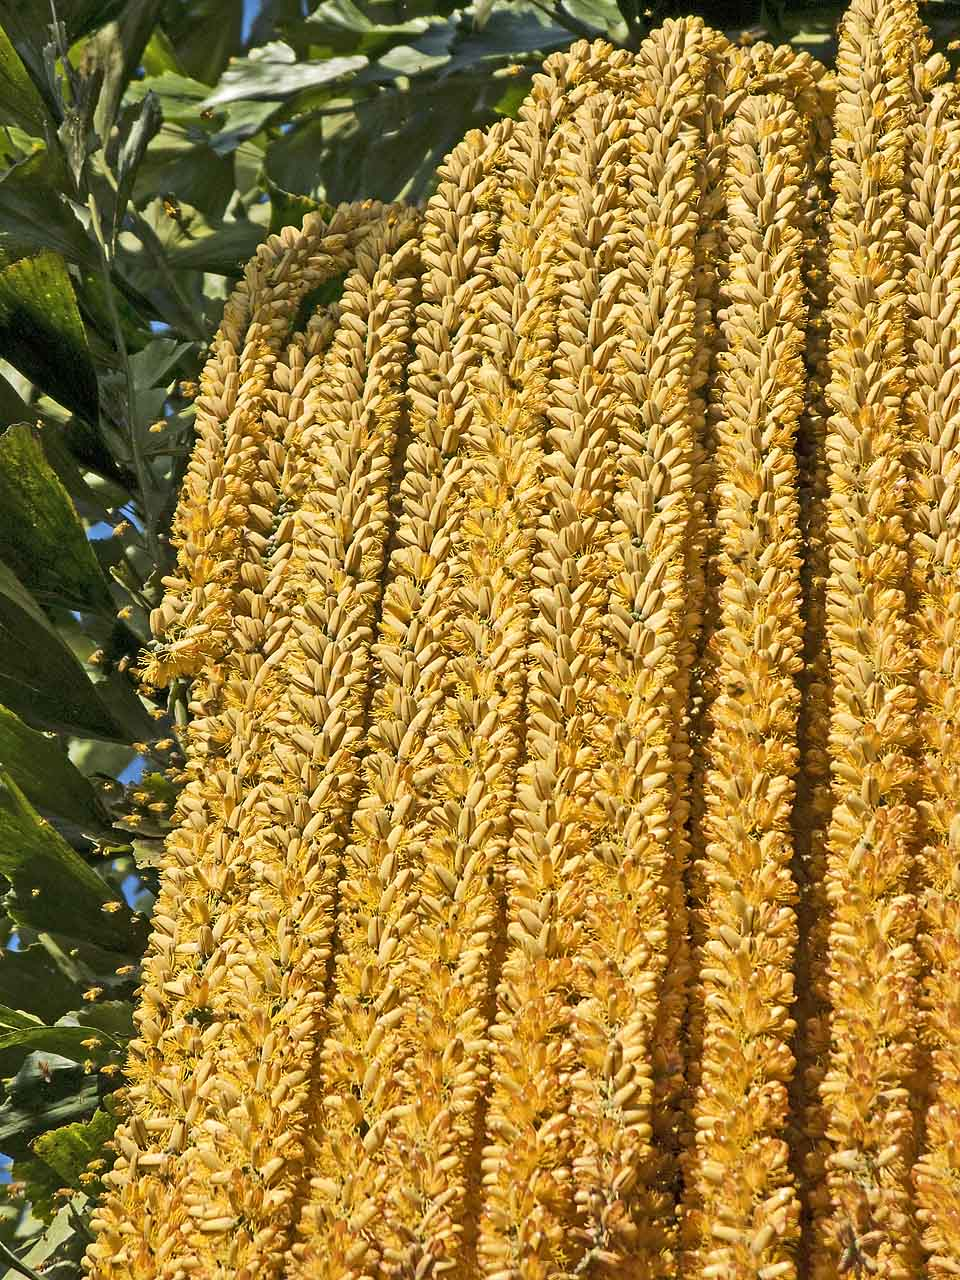 Bees feeding on blossoming Fishtail Palm